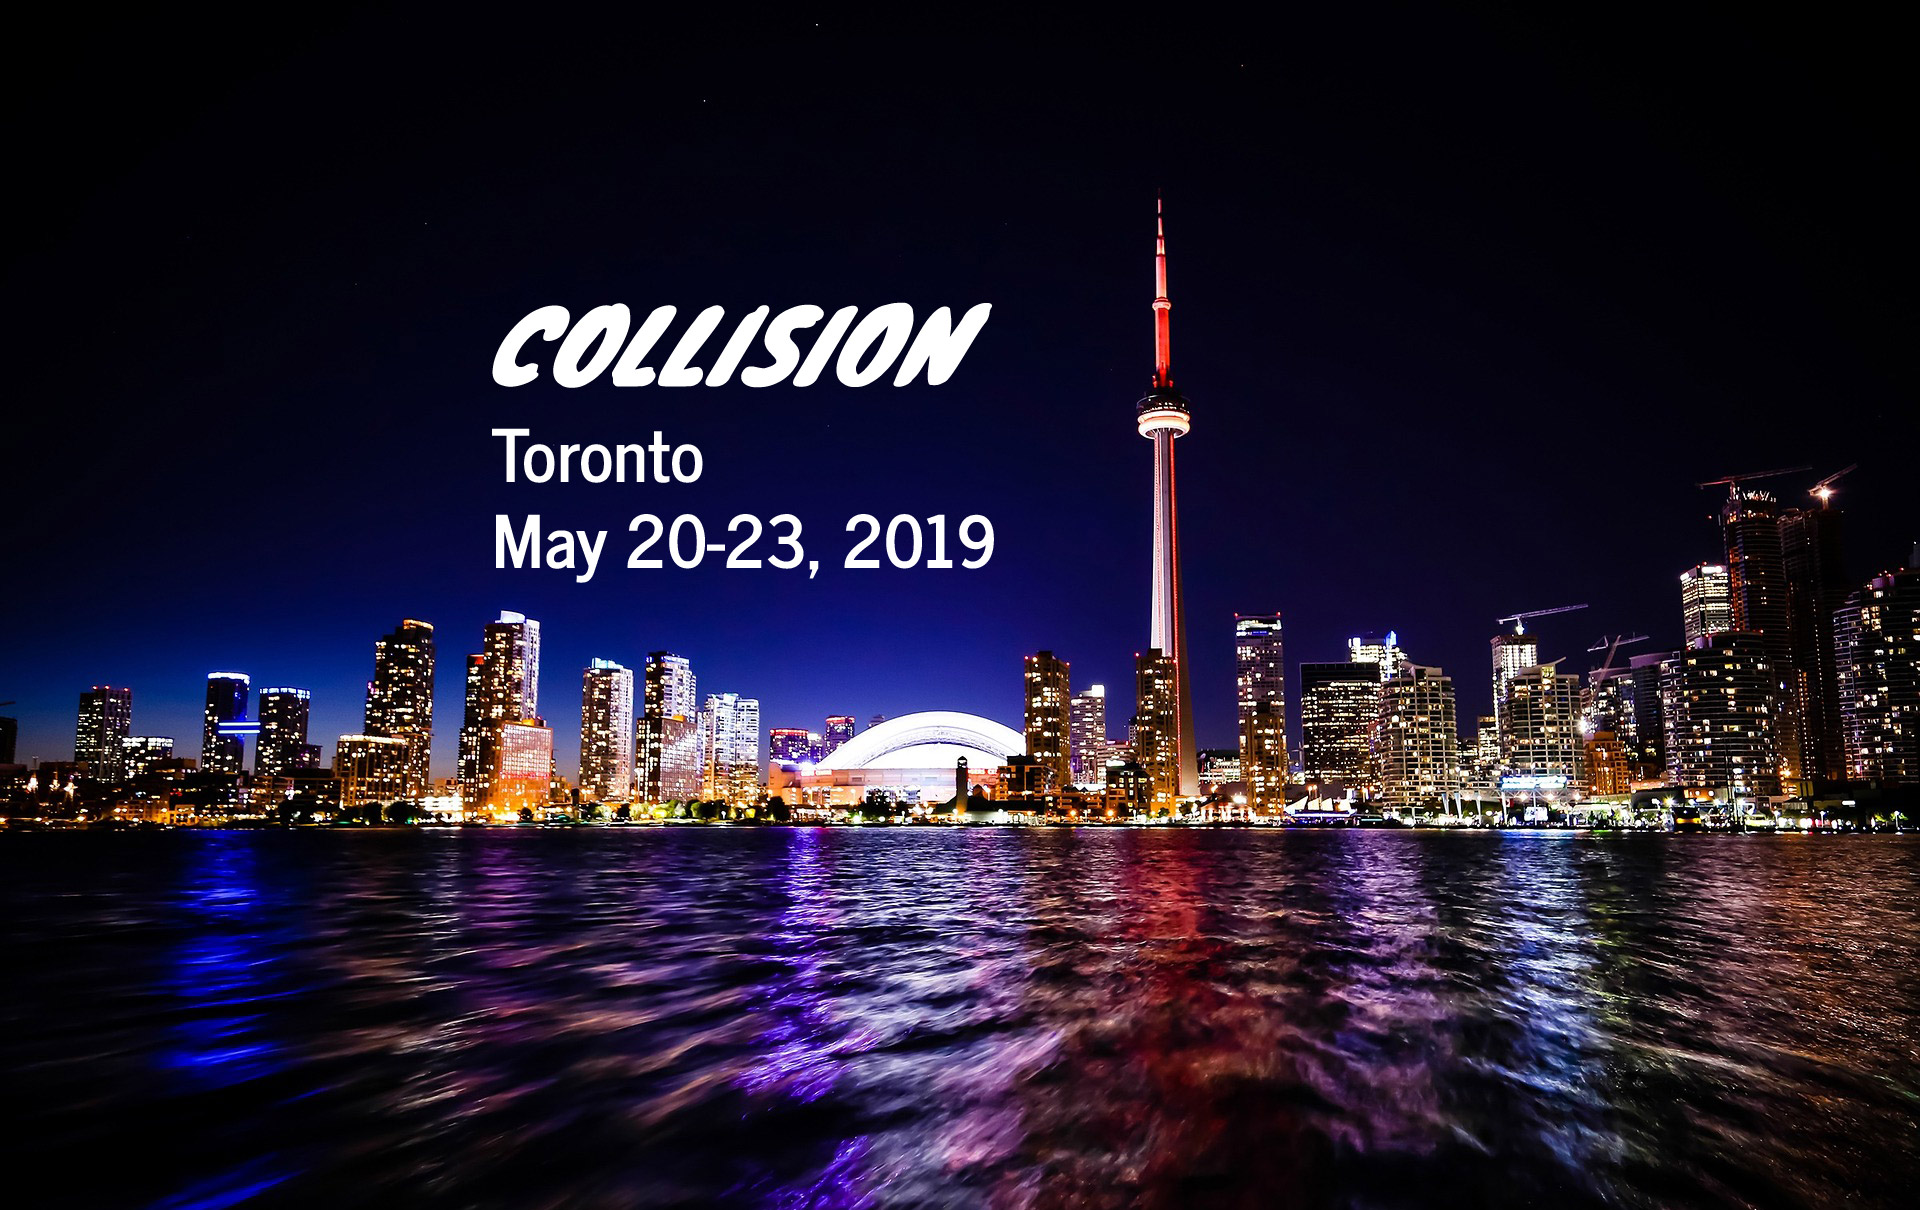 Collision - Tech Conference - Toronto - May 20-23, 2019